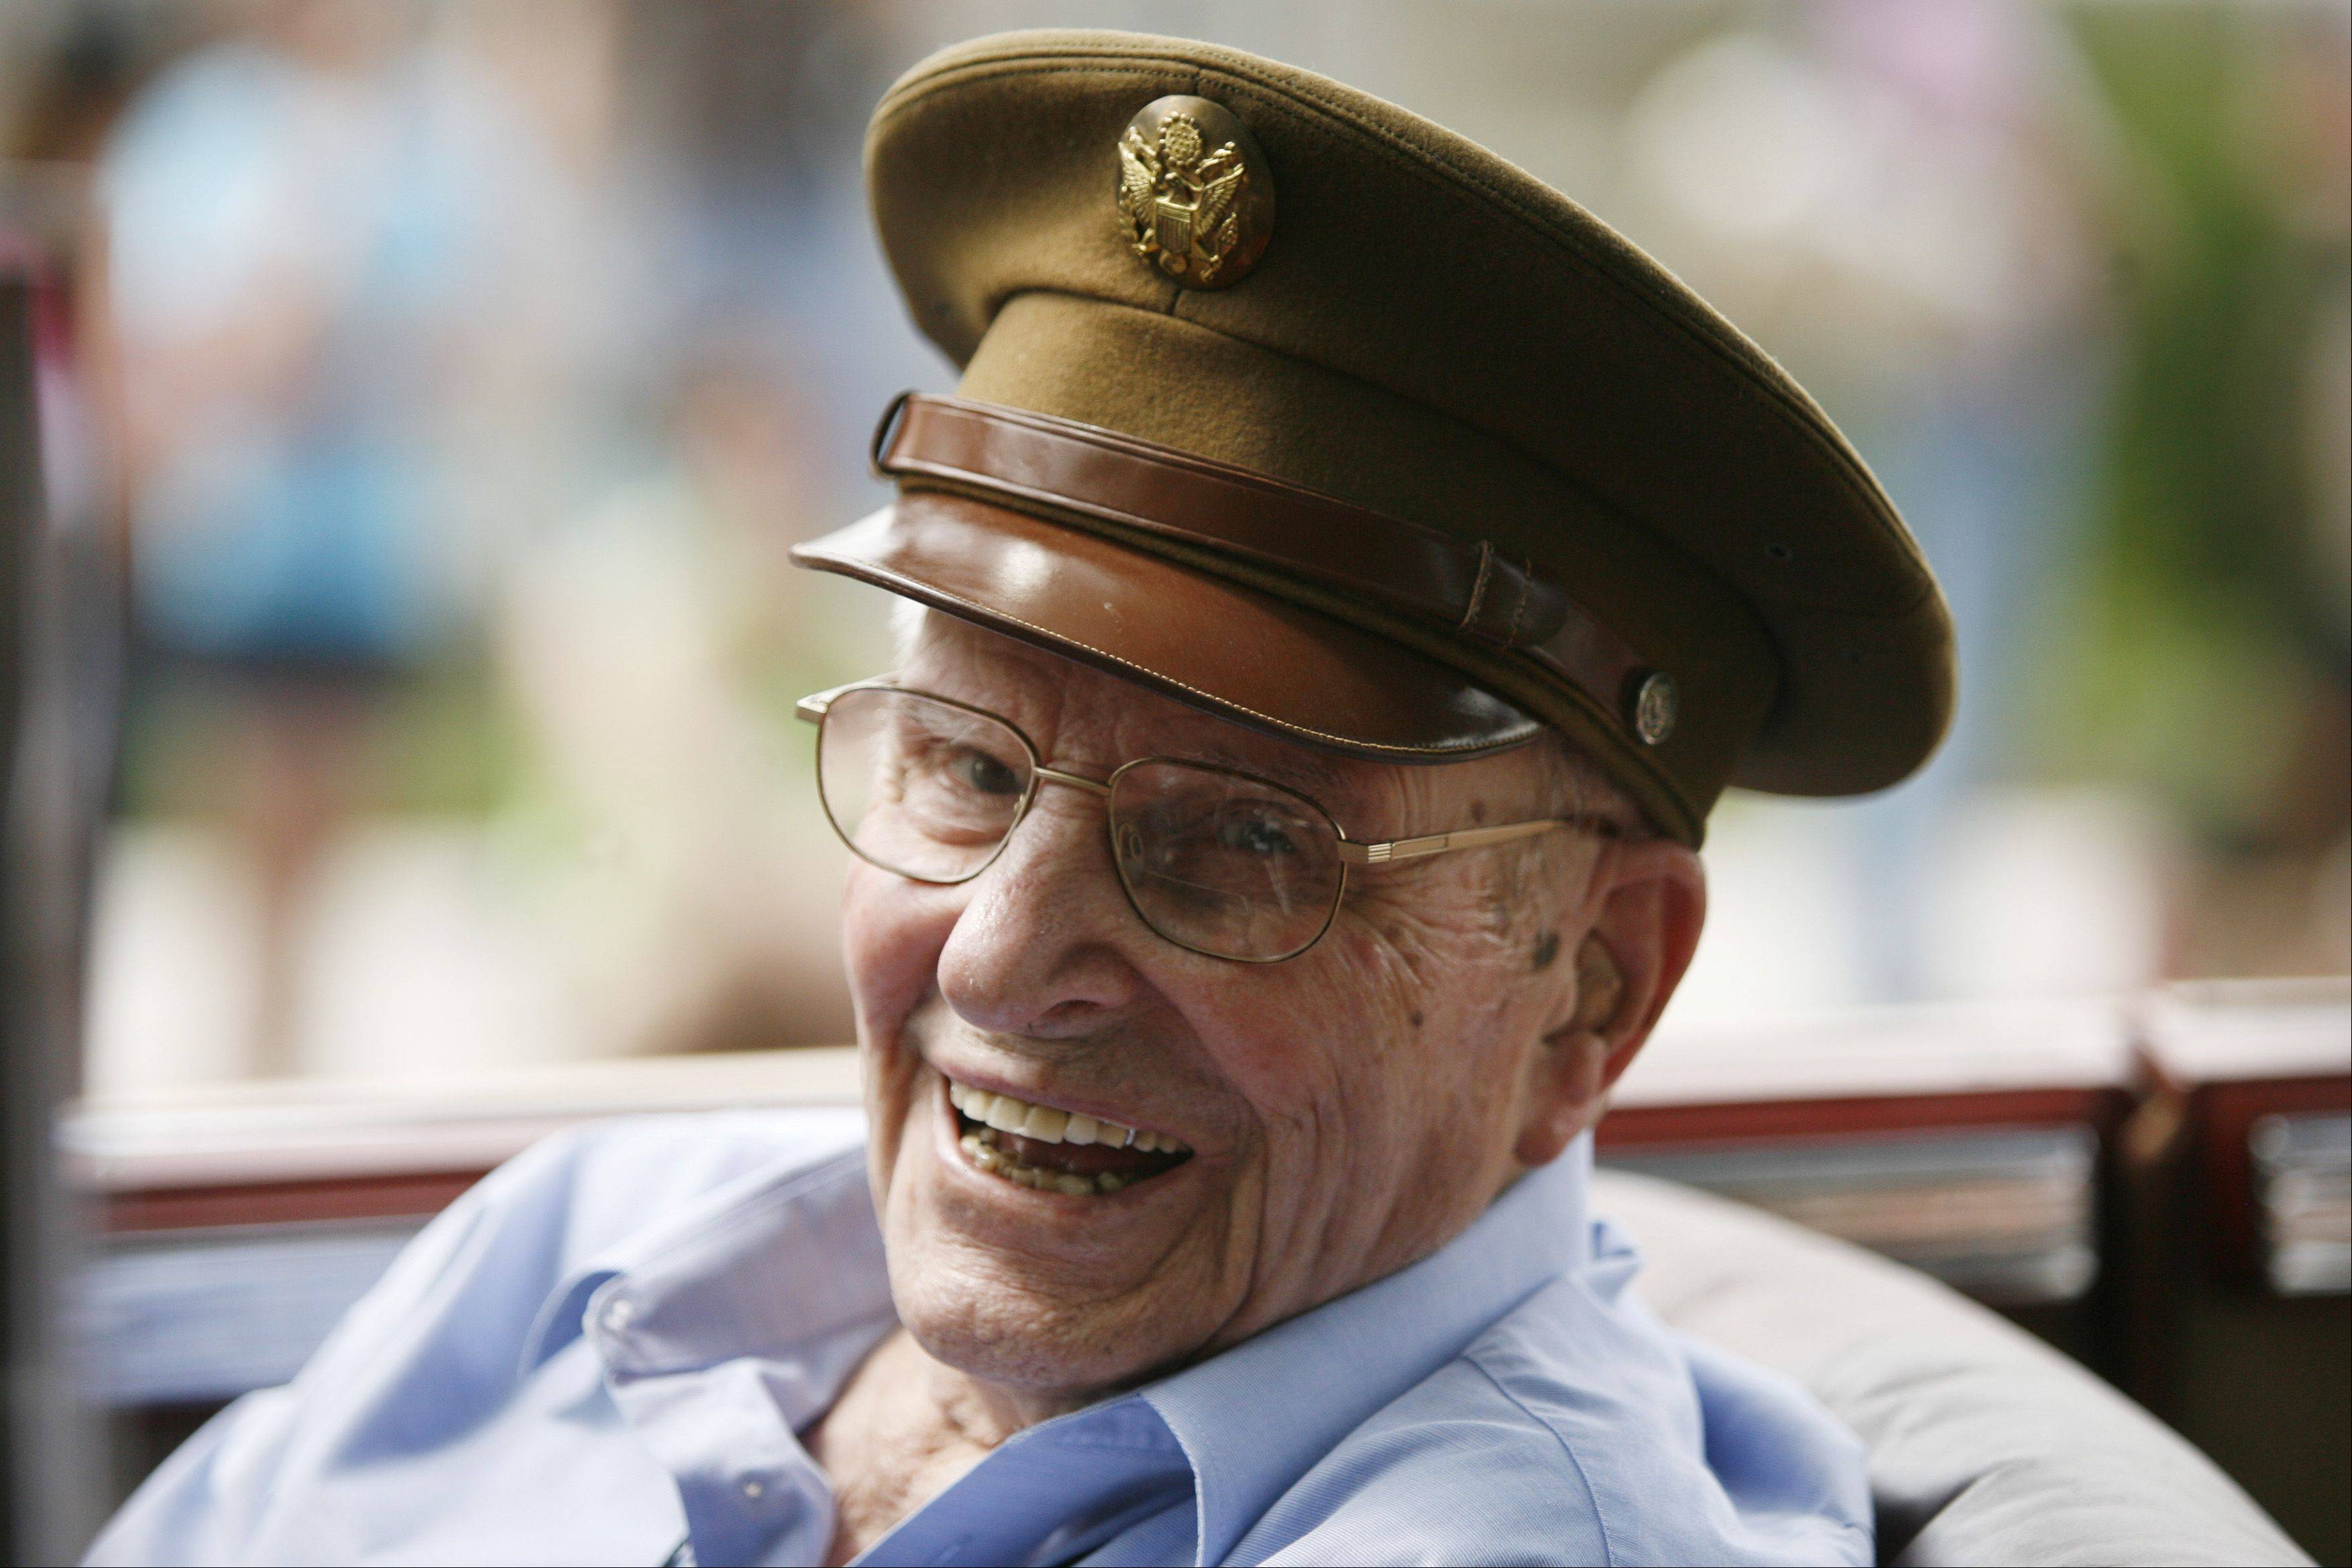 Leo Kuefler, 95, was Naperville's oldest veteran participating in the city's Memorial Day parade last May. He served as a platoon sergeant in the Army during World War II.